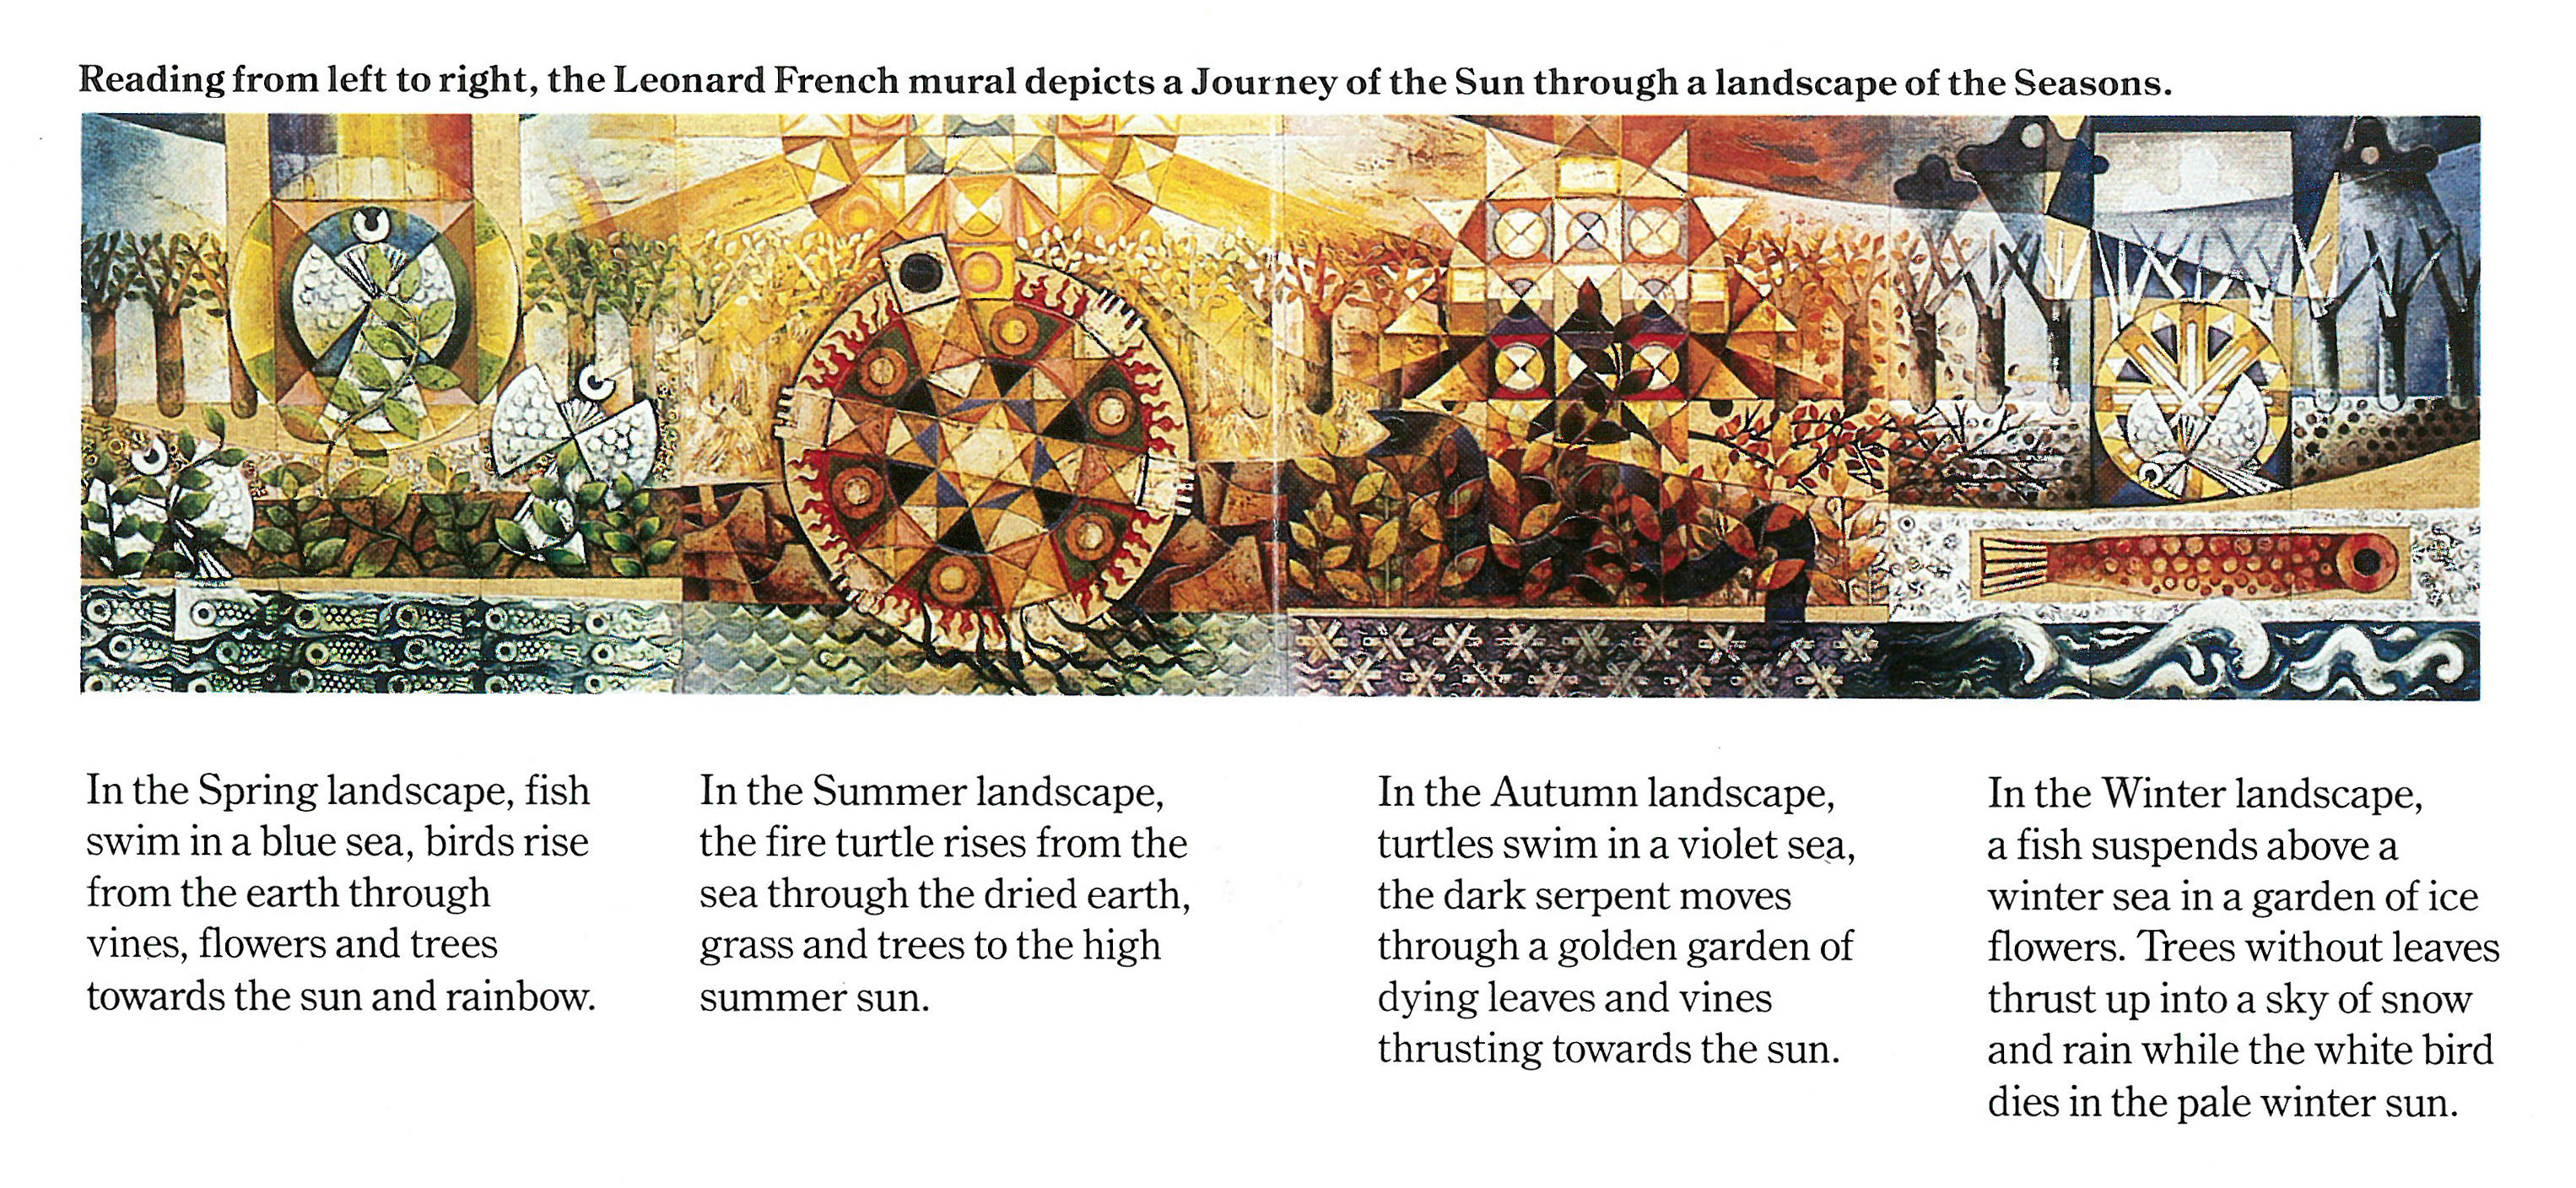 'Journey of the Sun' a mural by Leonard French commissioned for State Bank Centre. VPRS 08936 P1 Unit 248 Item E463.